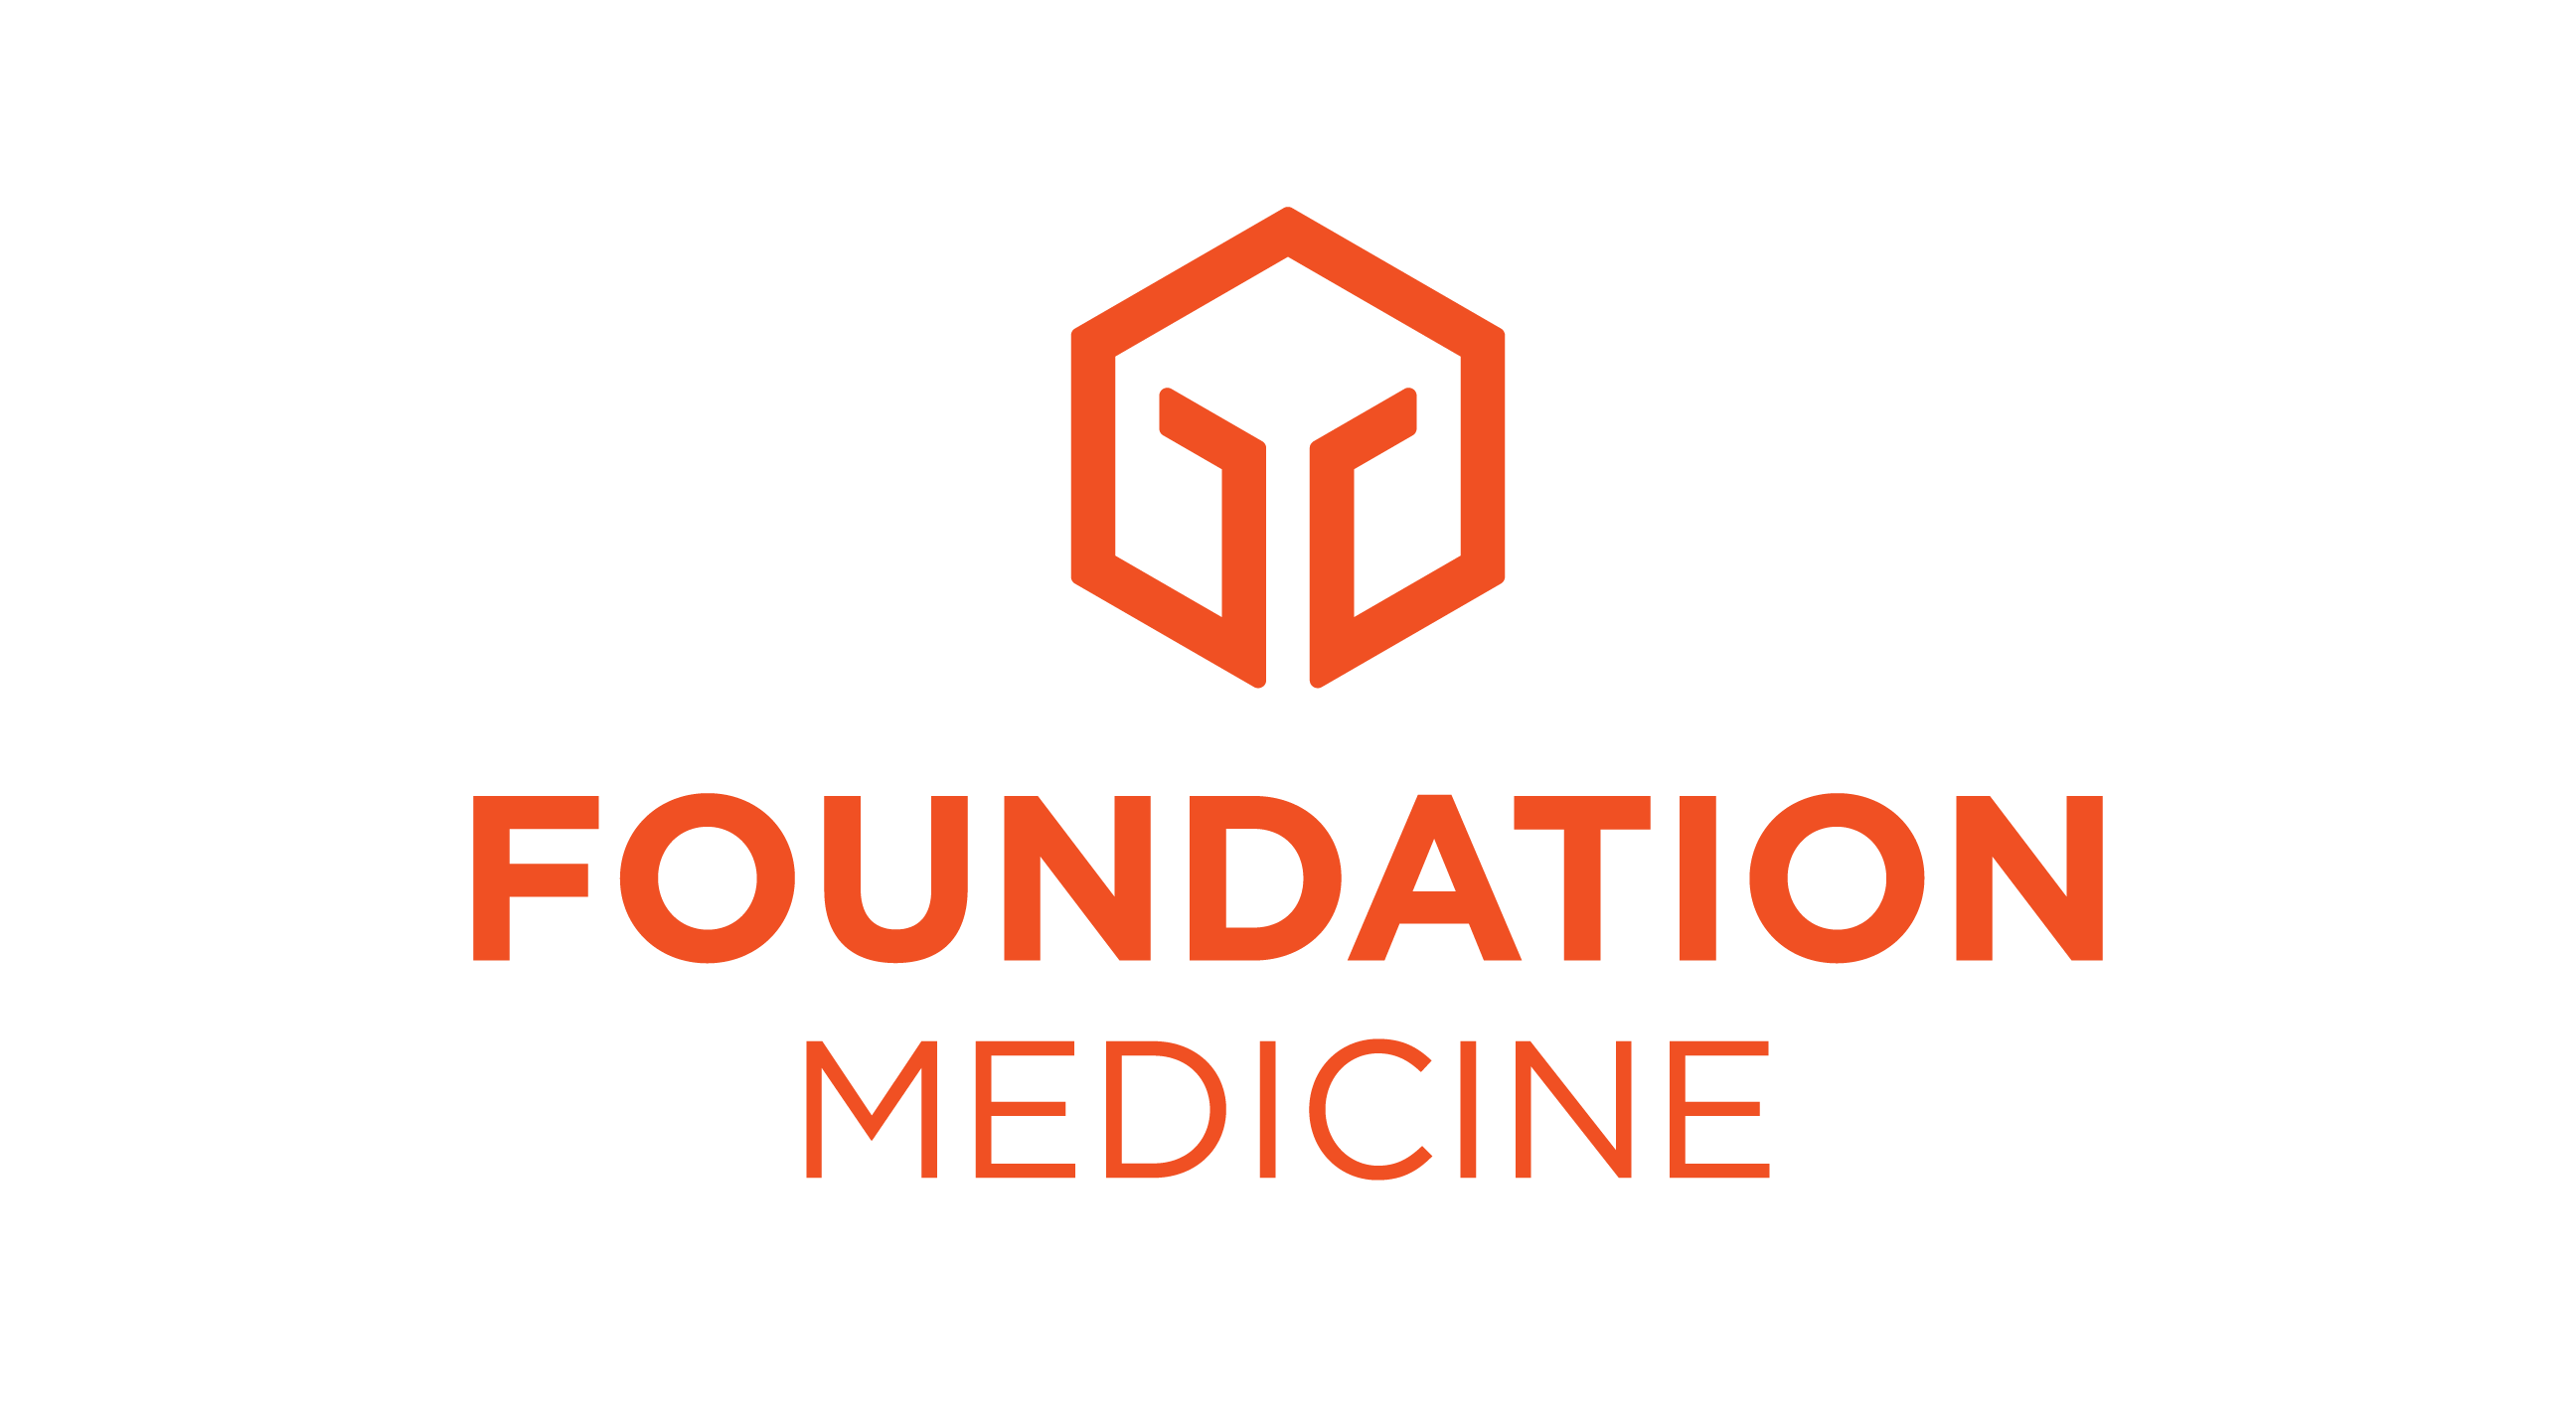 Foundation Medicine logo